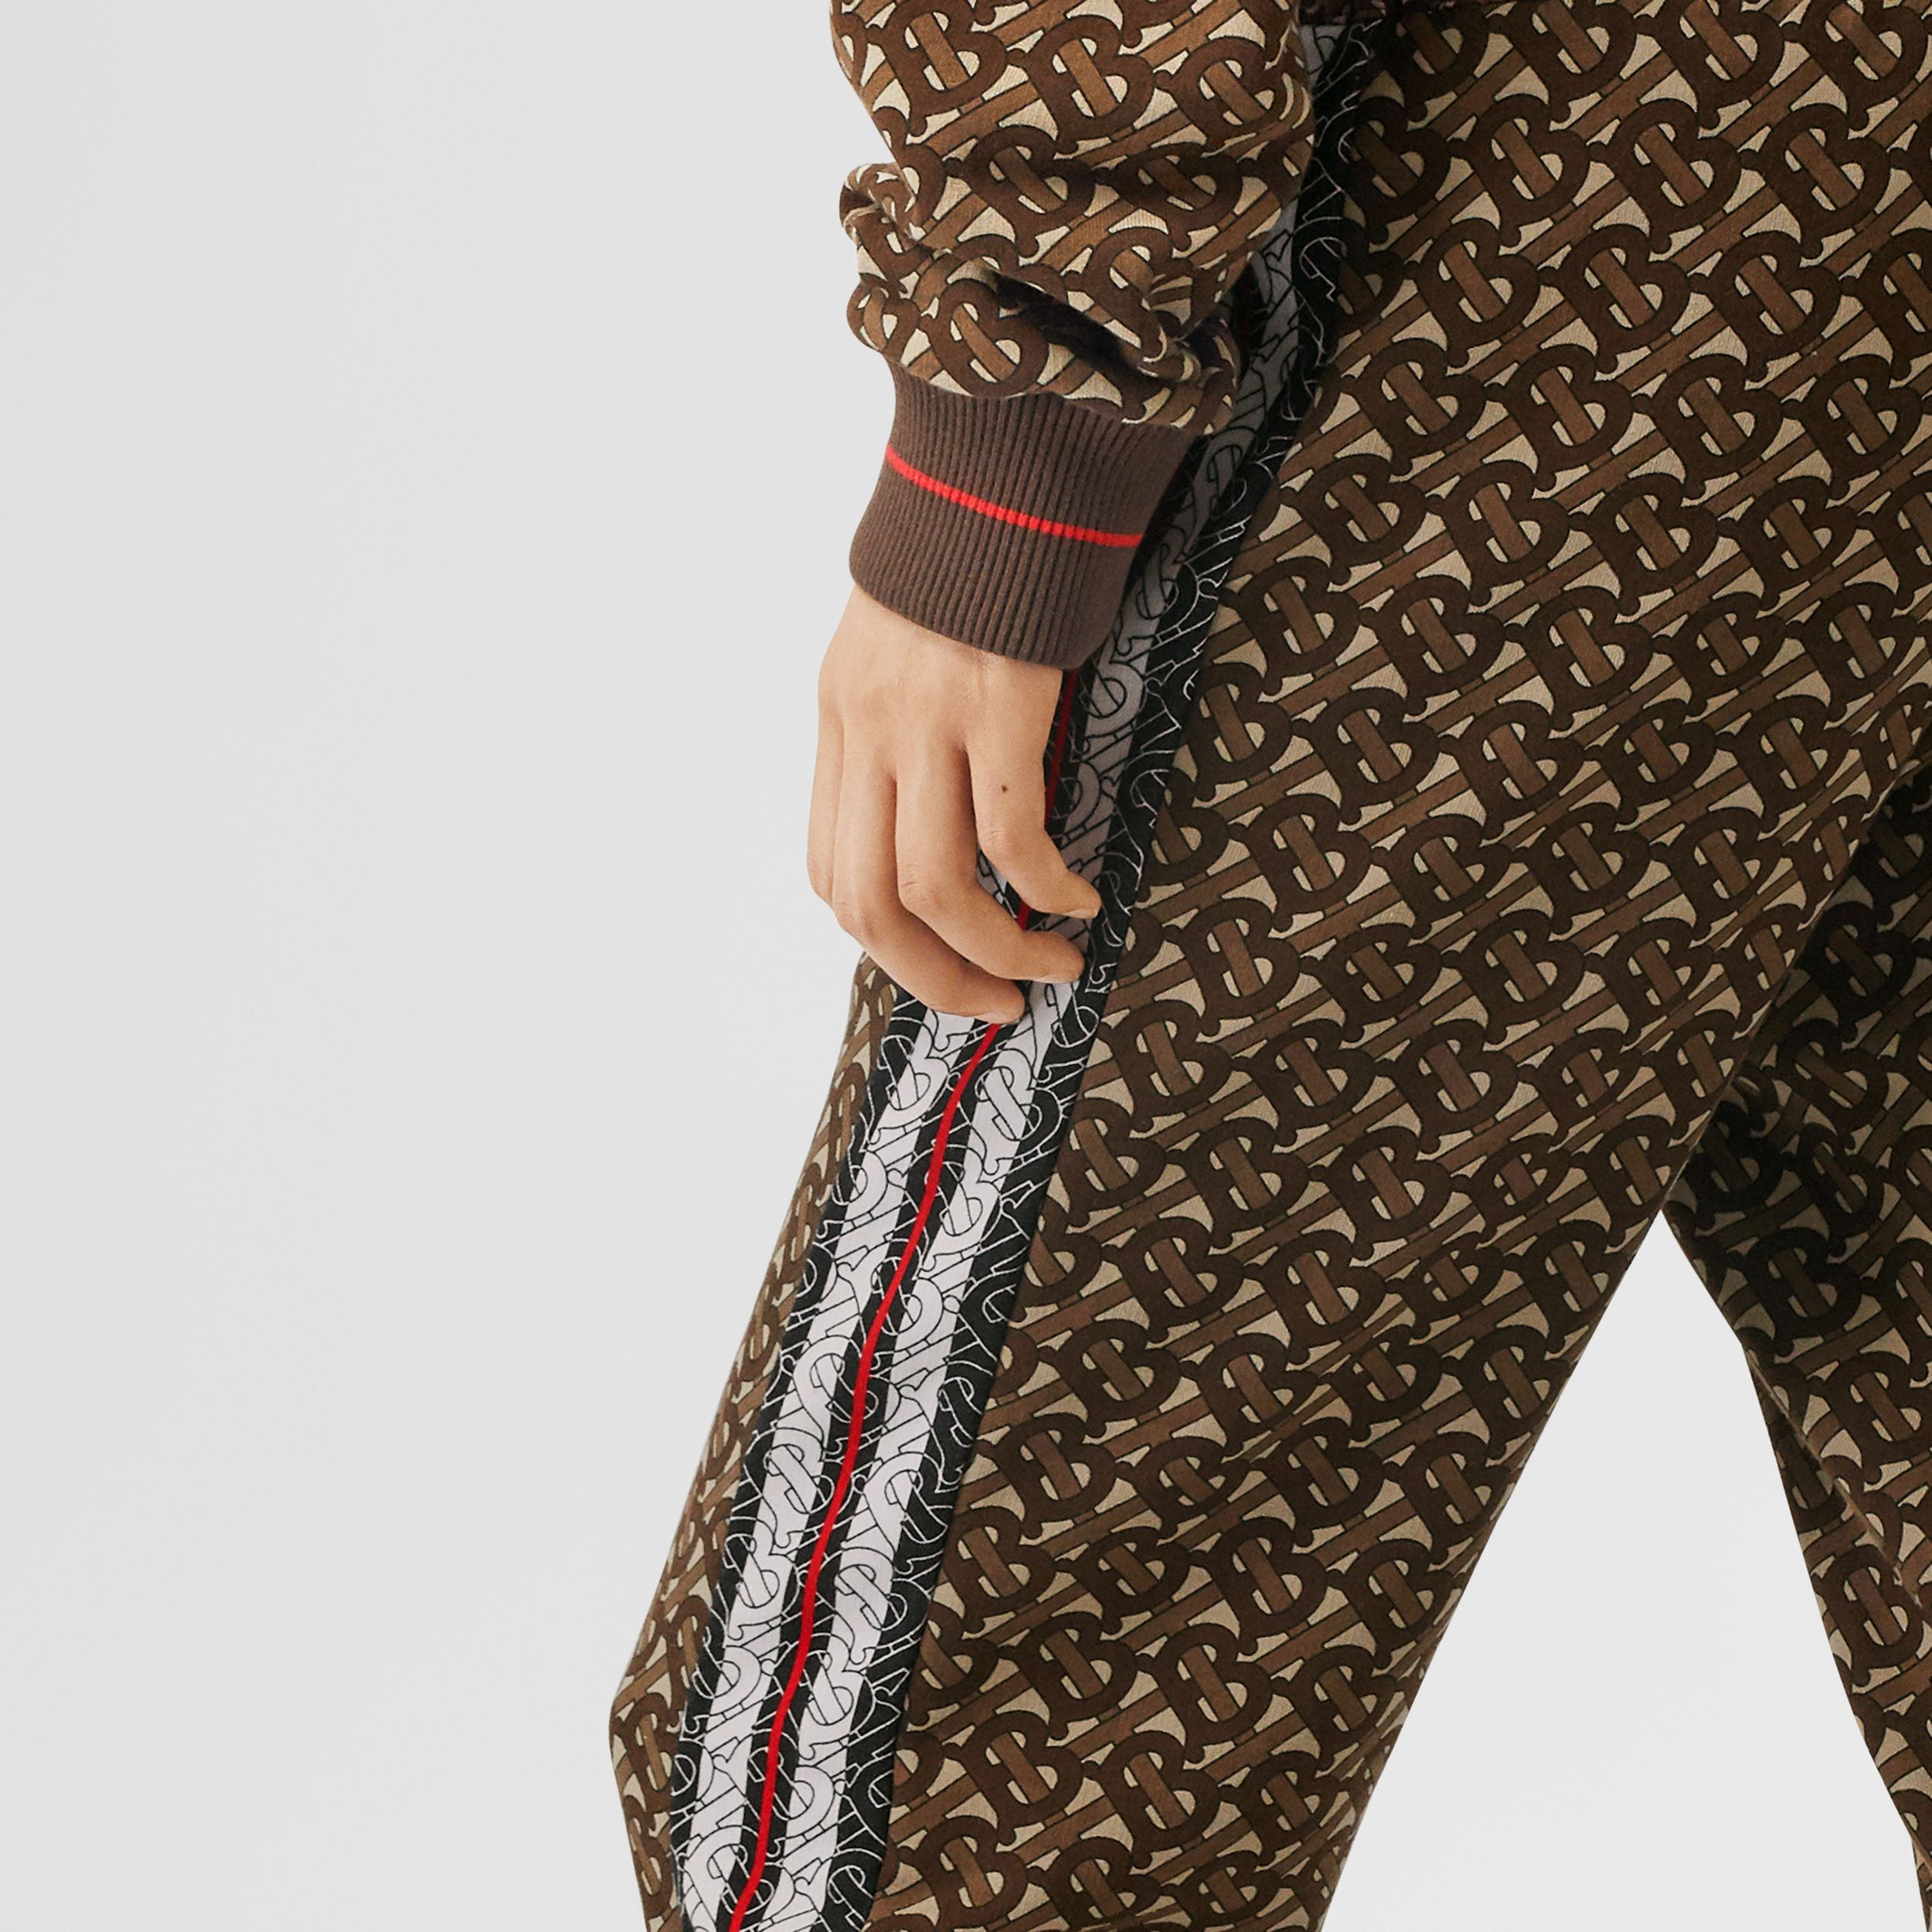 Monogram Stripe Print Cotton Jogging Pants in Bridle Brown - Women | Burberry Singapore - 4